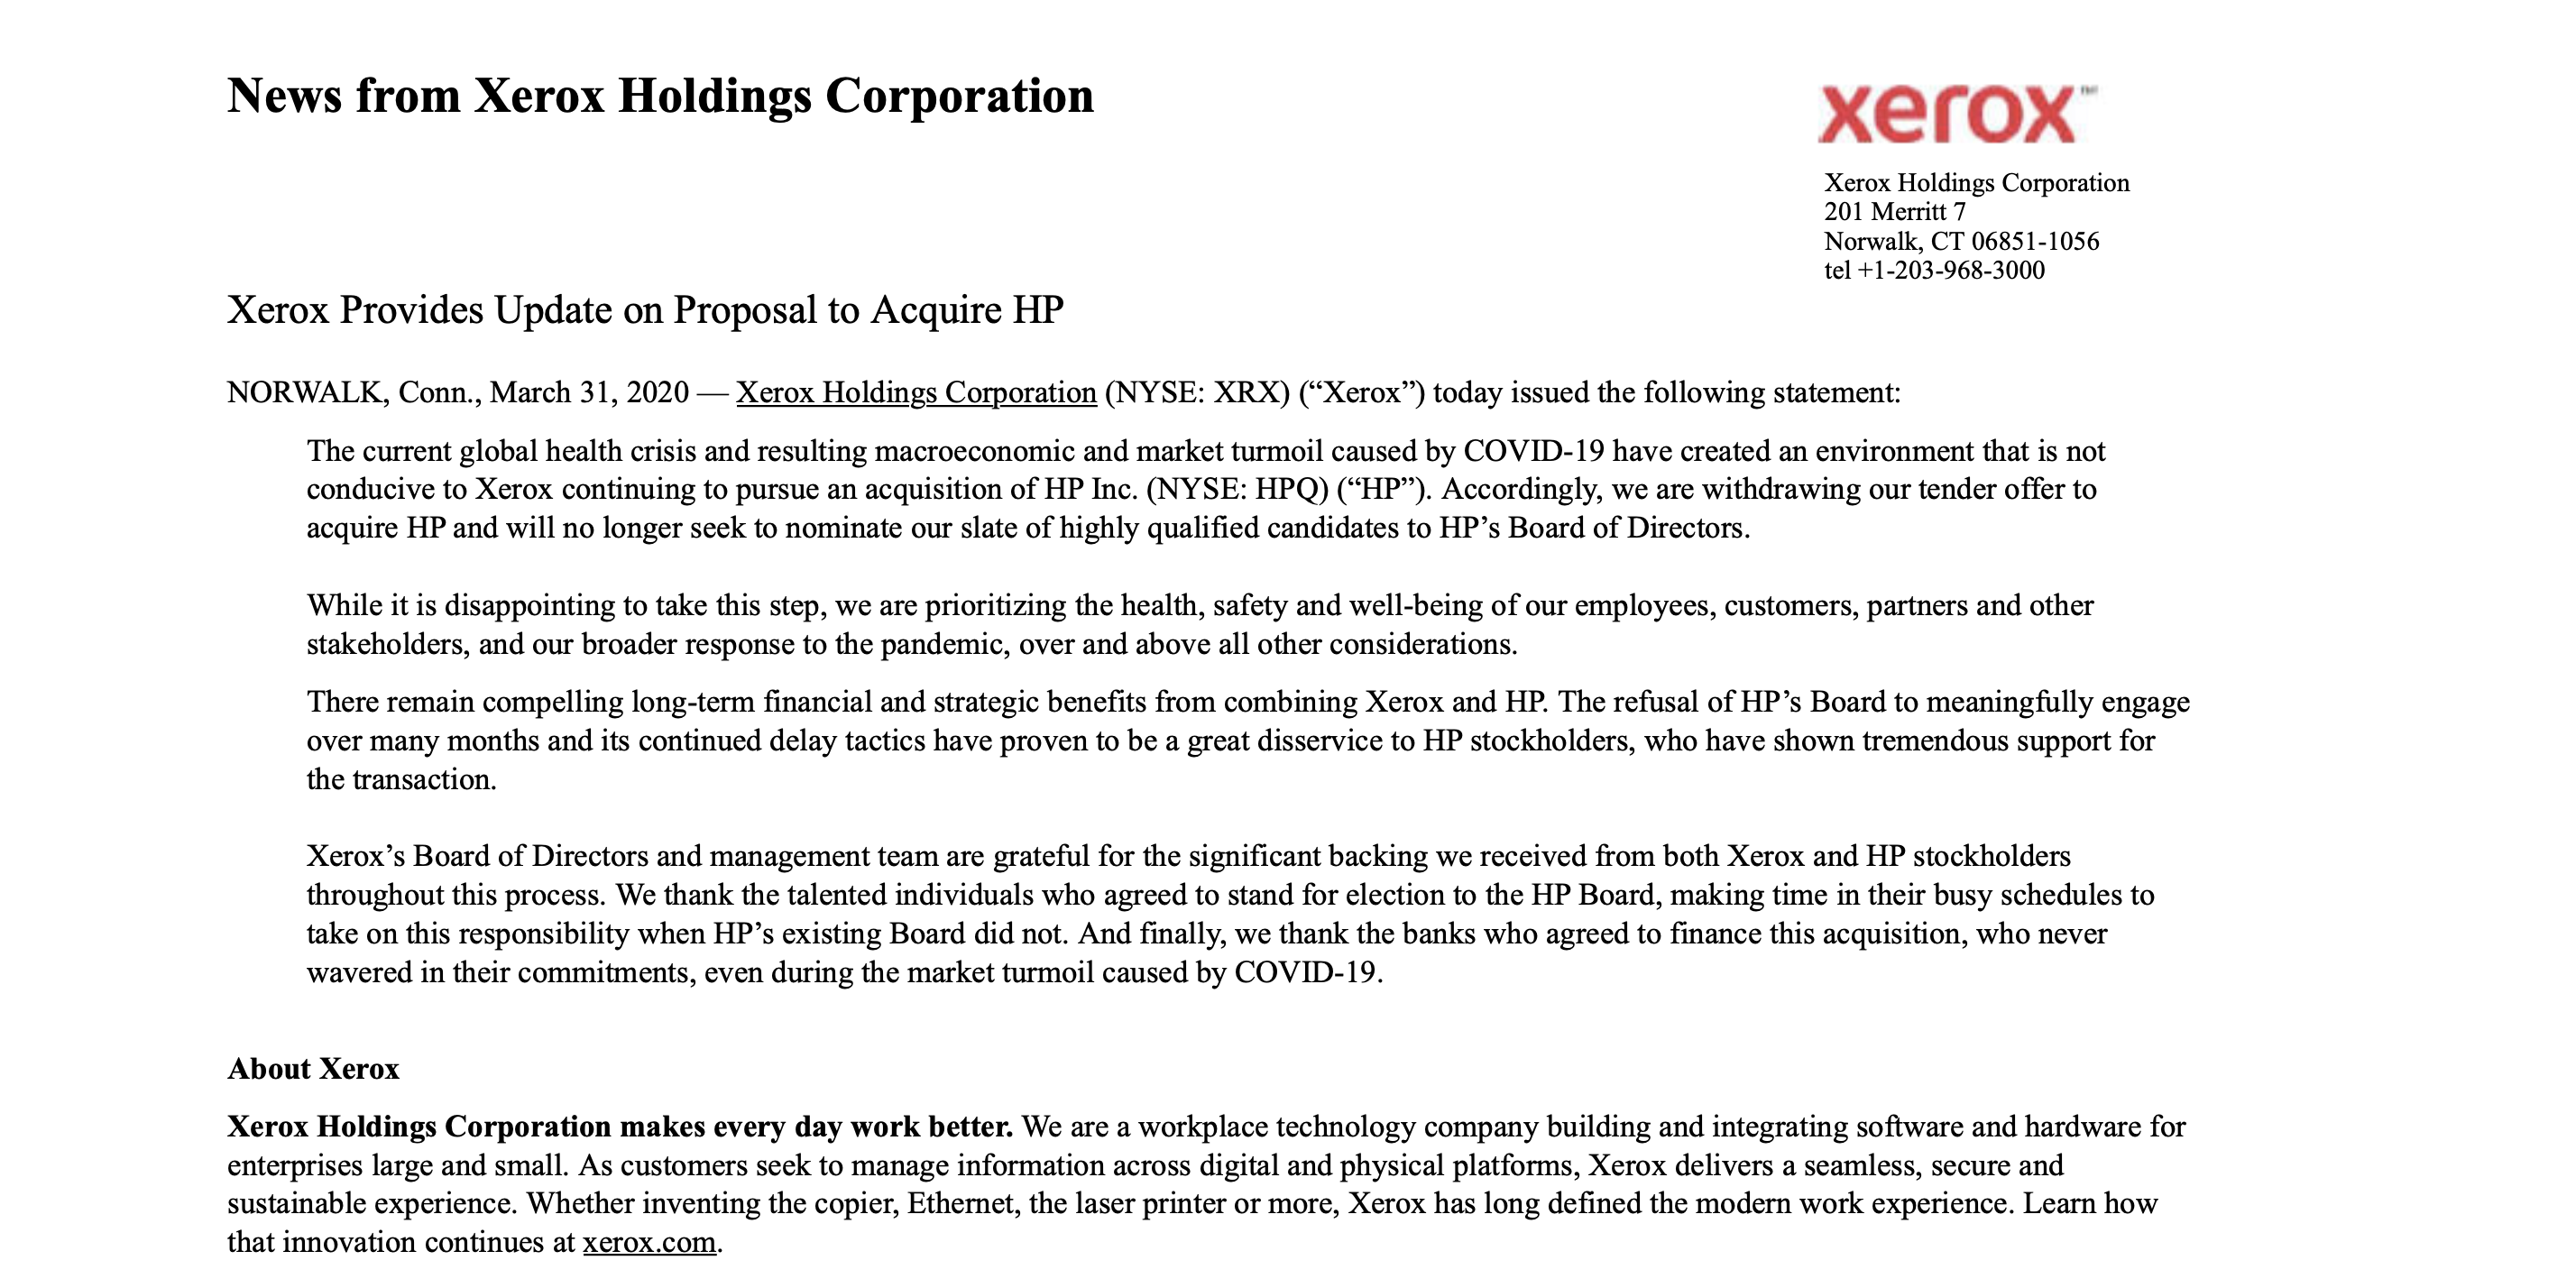 Xerox Holding Corporation withdraws HP tender offer